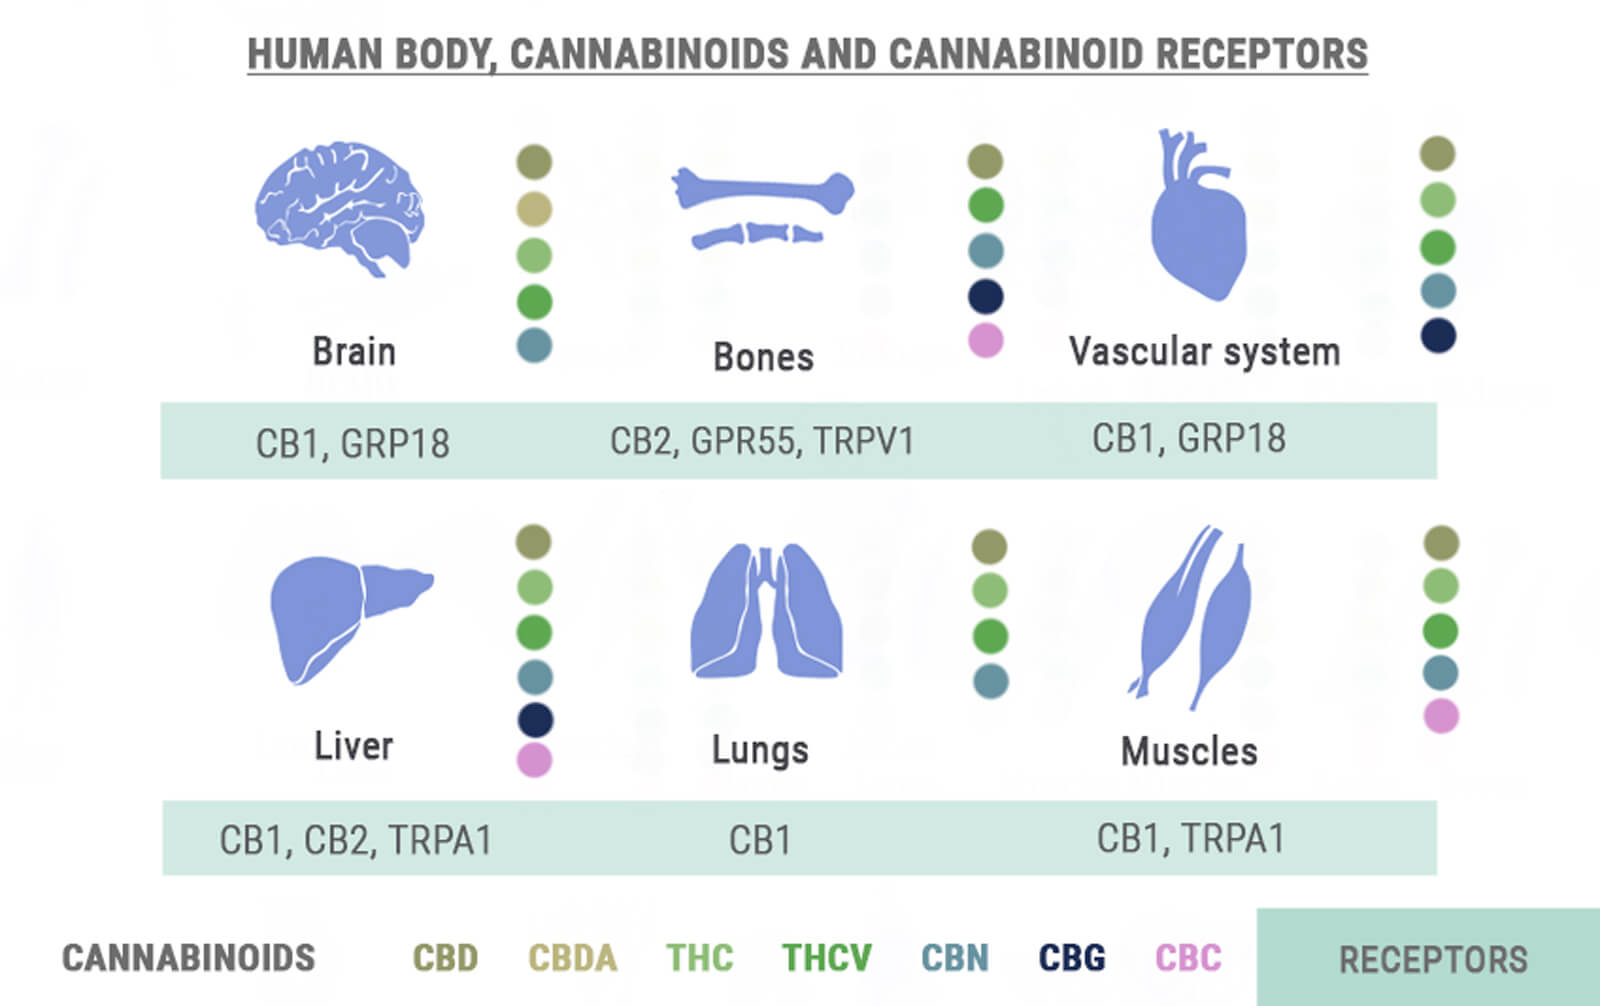 Body, Cannabinoids and Receptors